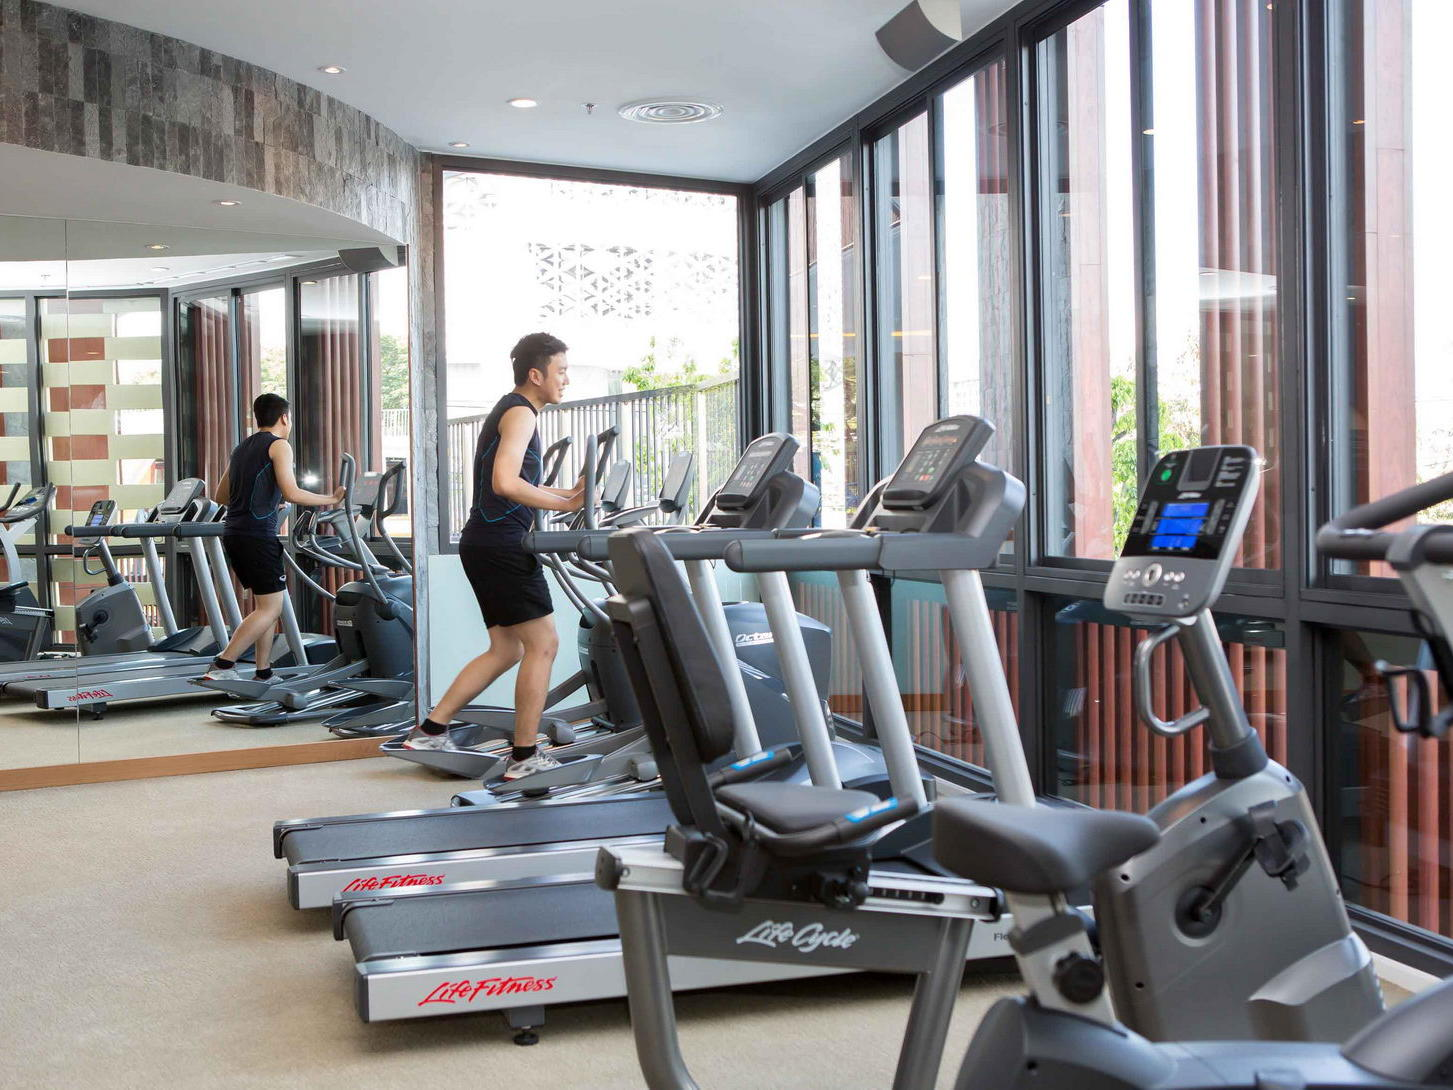 Man working out at the gym - Eastin Hotel